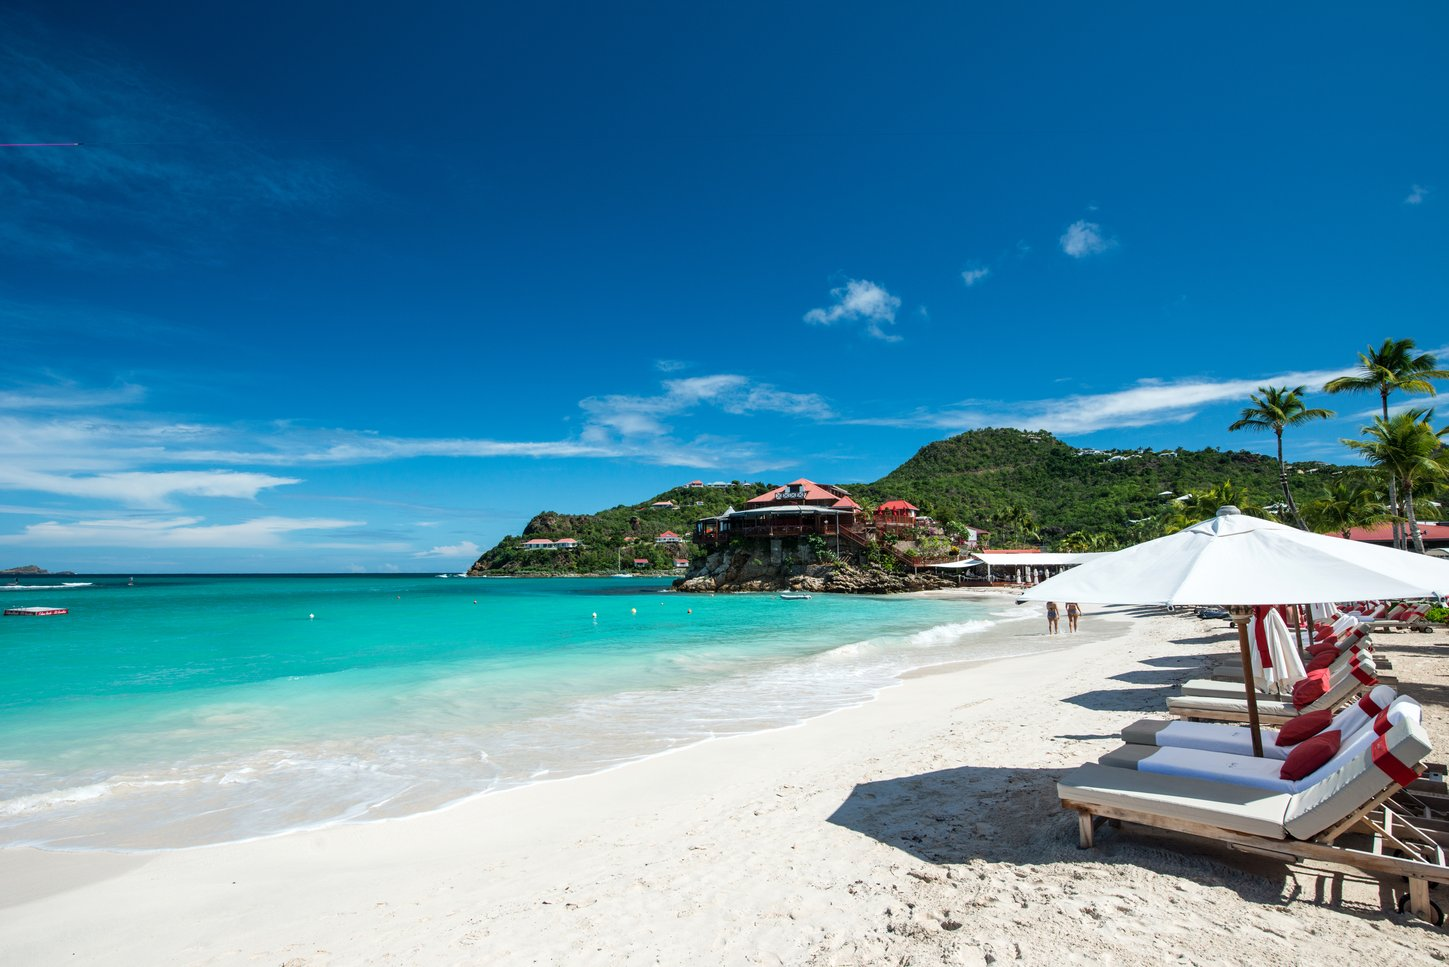 Things to see & do in St Barts